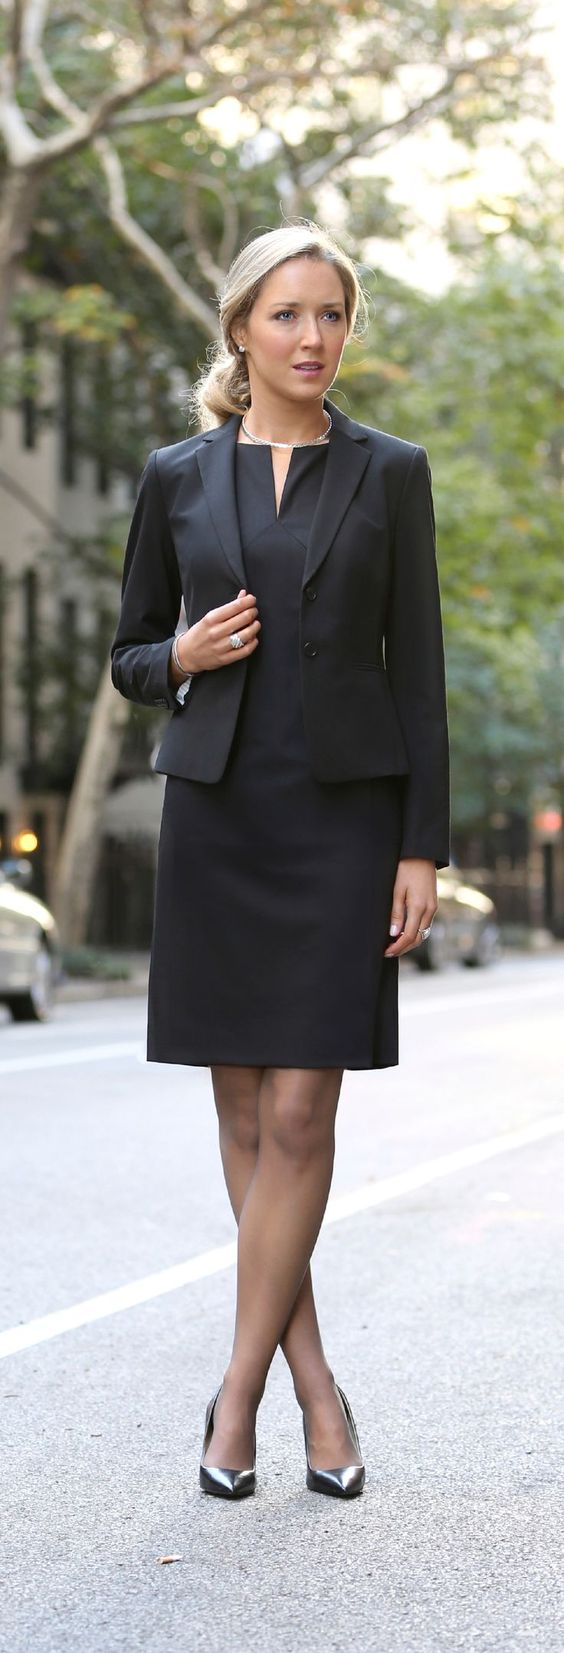 Young Professional Business Fashion Business Attire Women